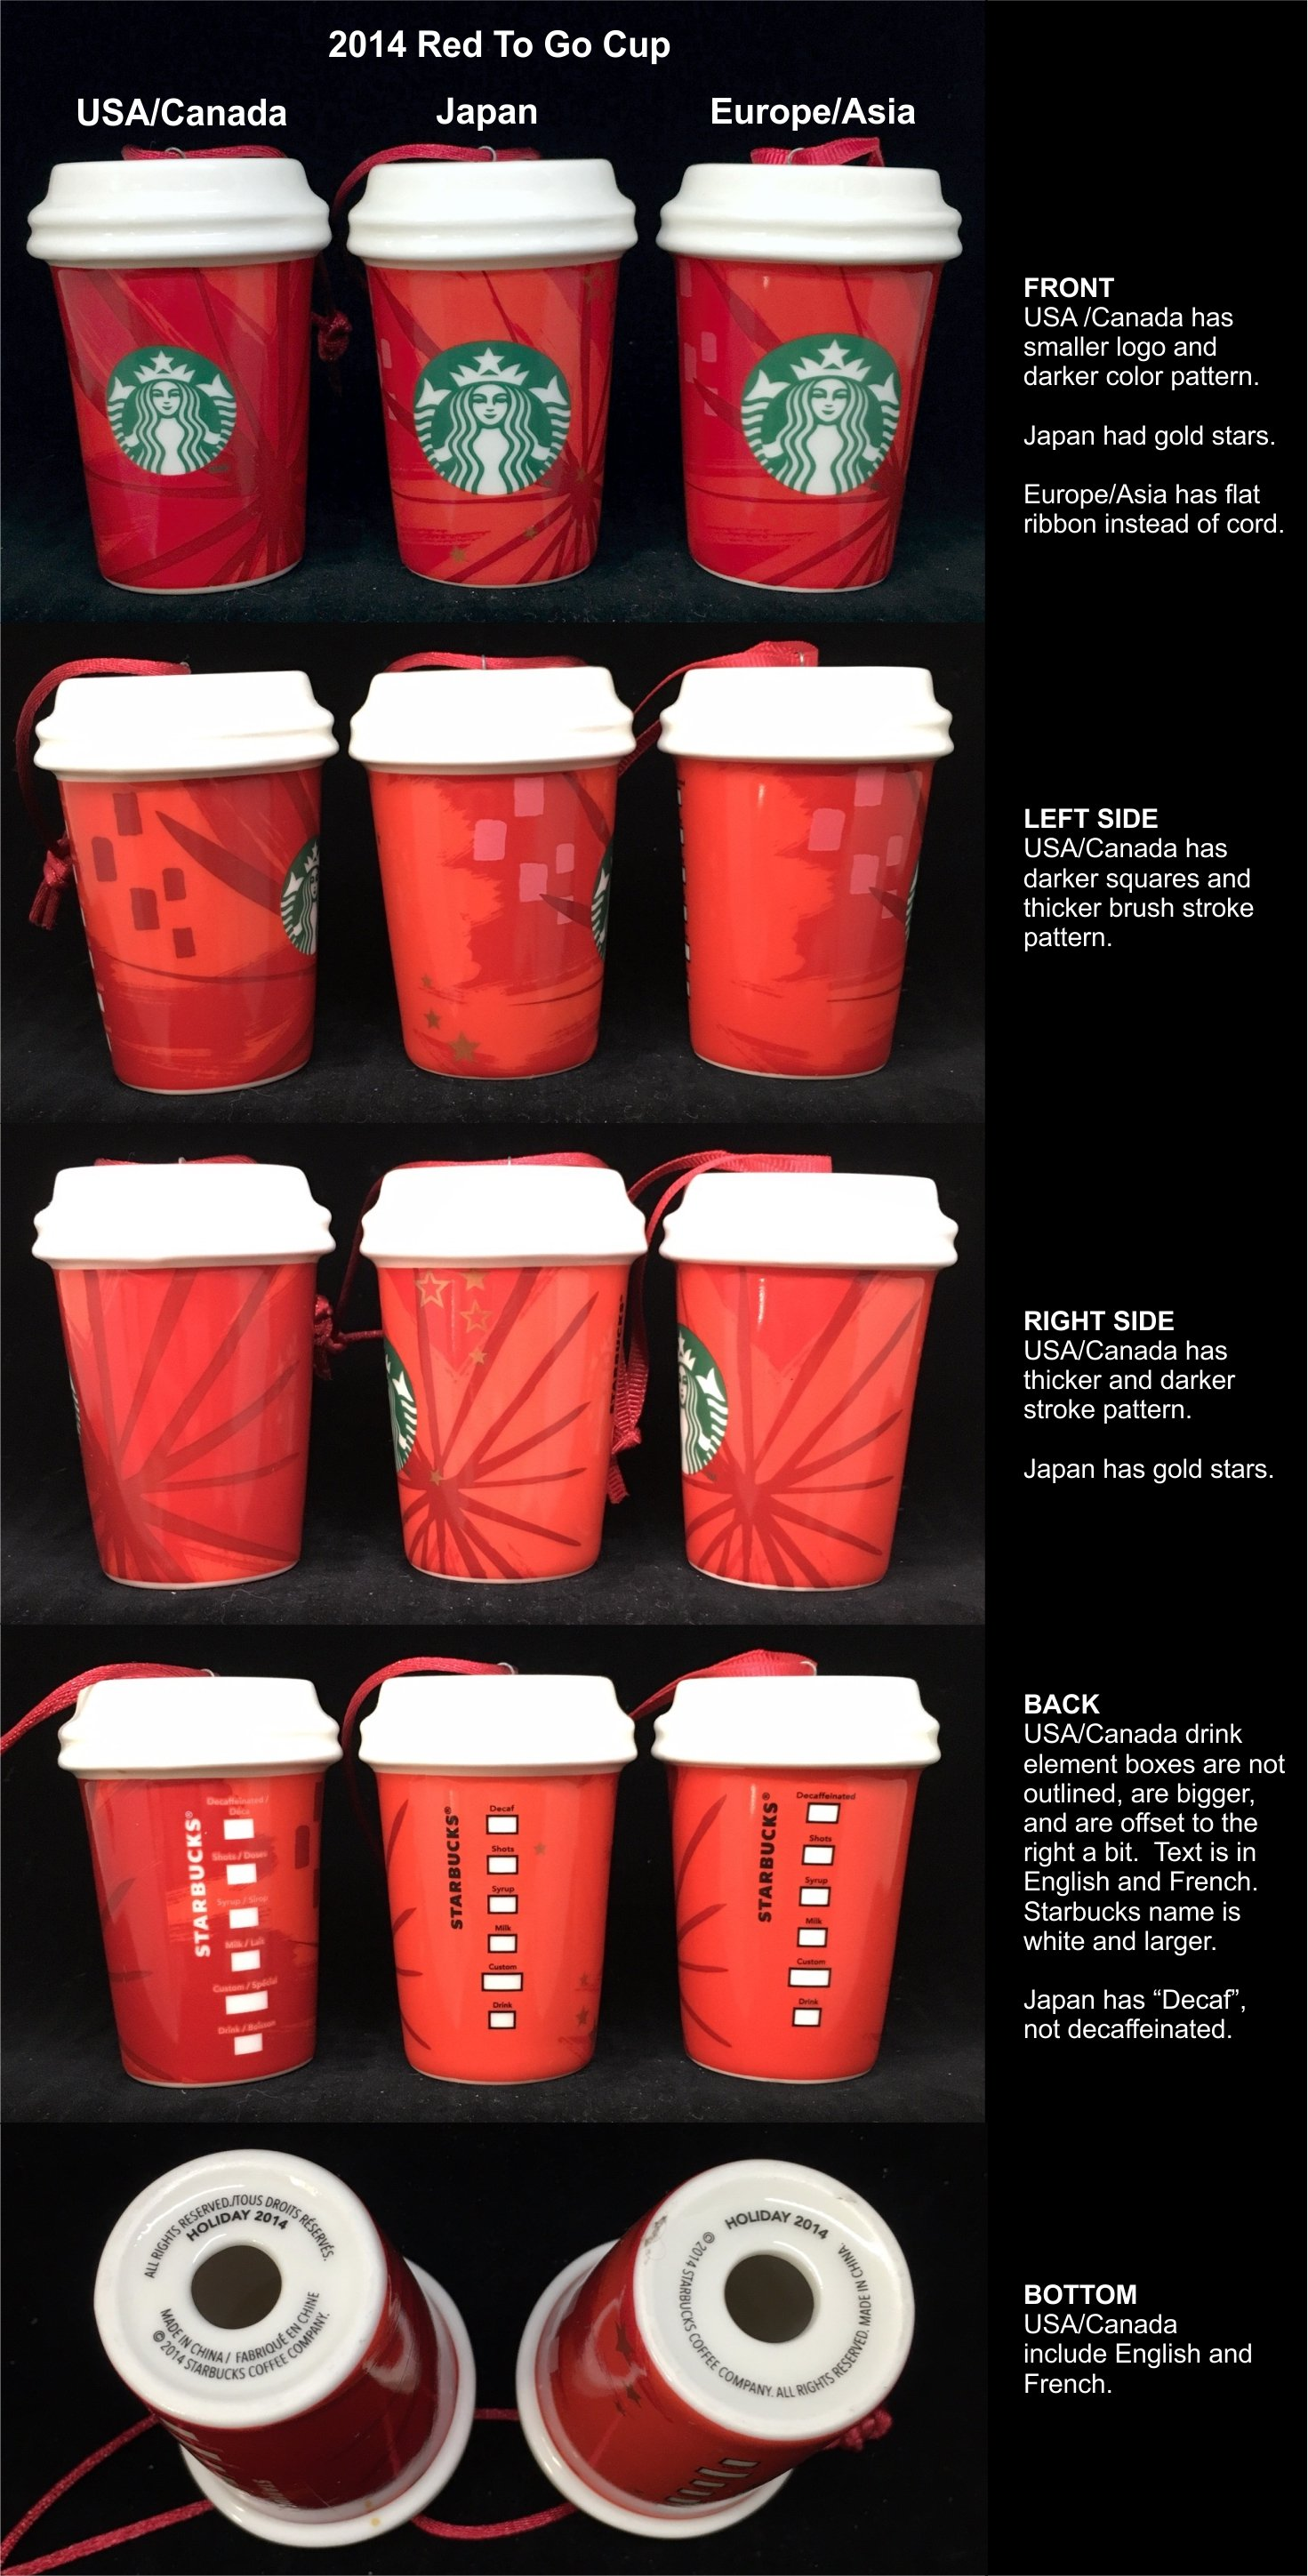 2014 Red To Go Cup Comparison